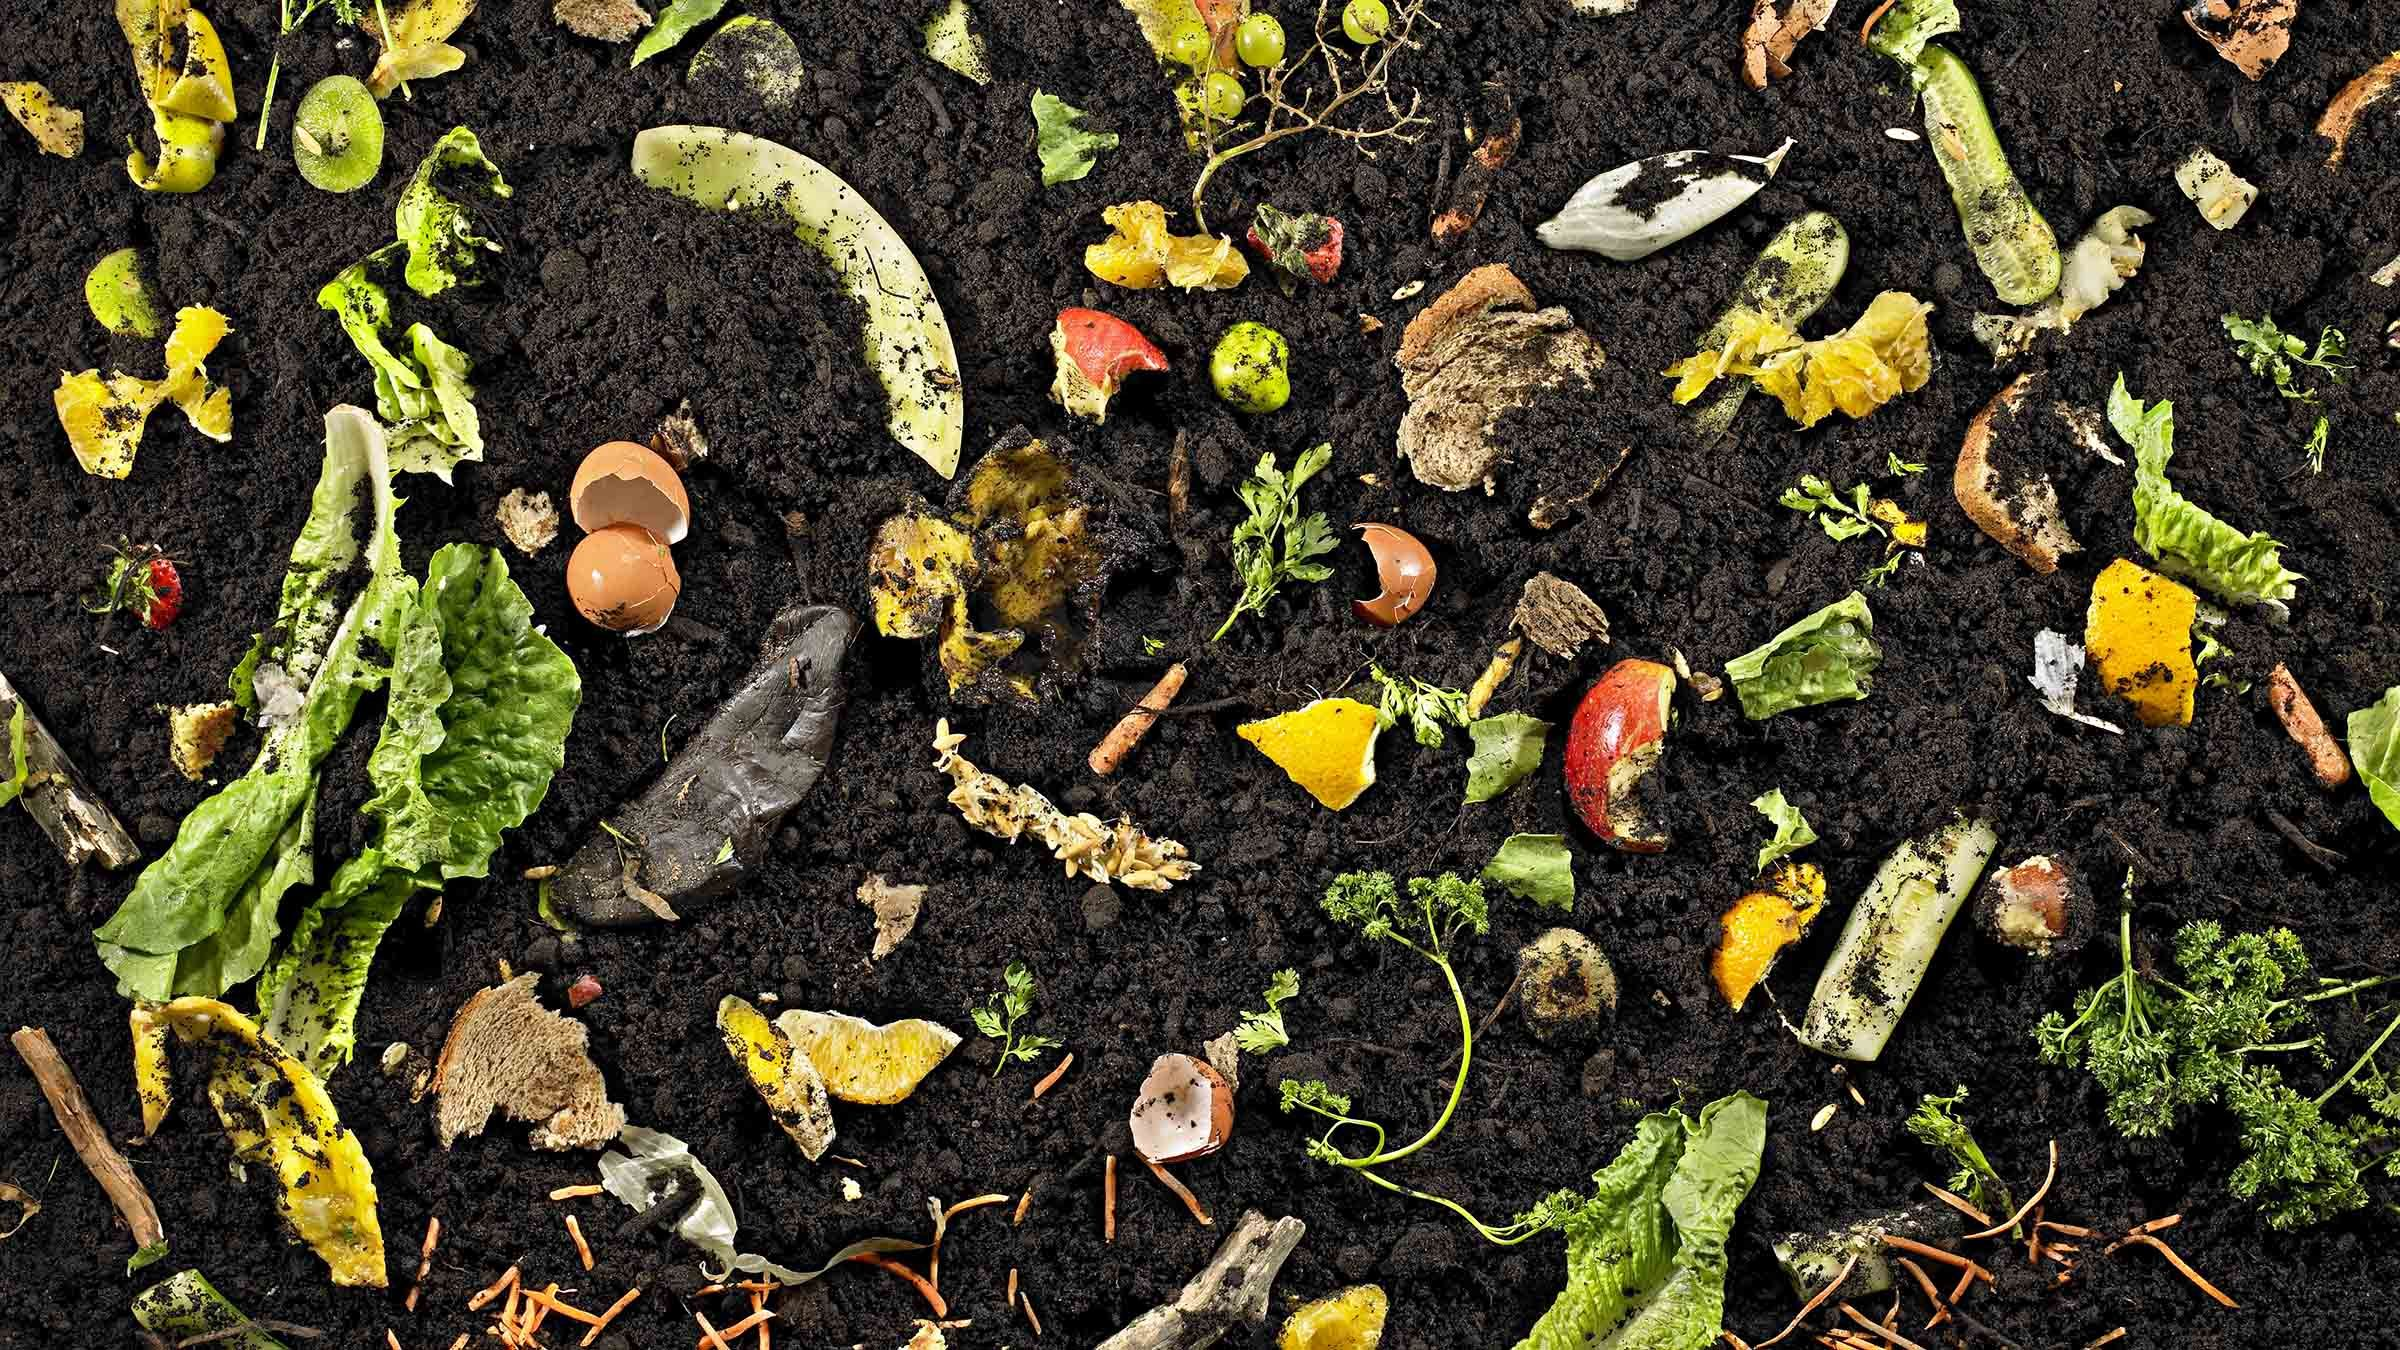 TBS Next Gen: Composting, not a pile of rubbish